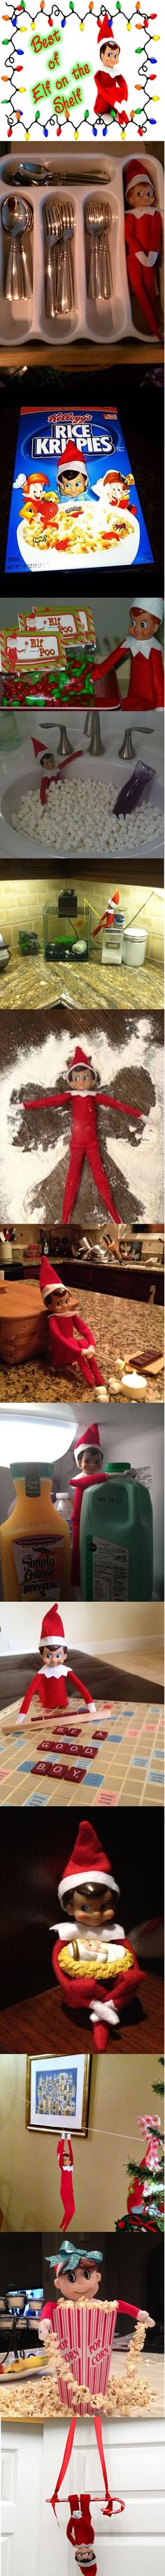 Best of Elf on the Shelf ;)